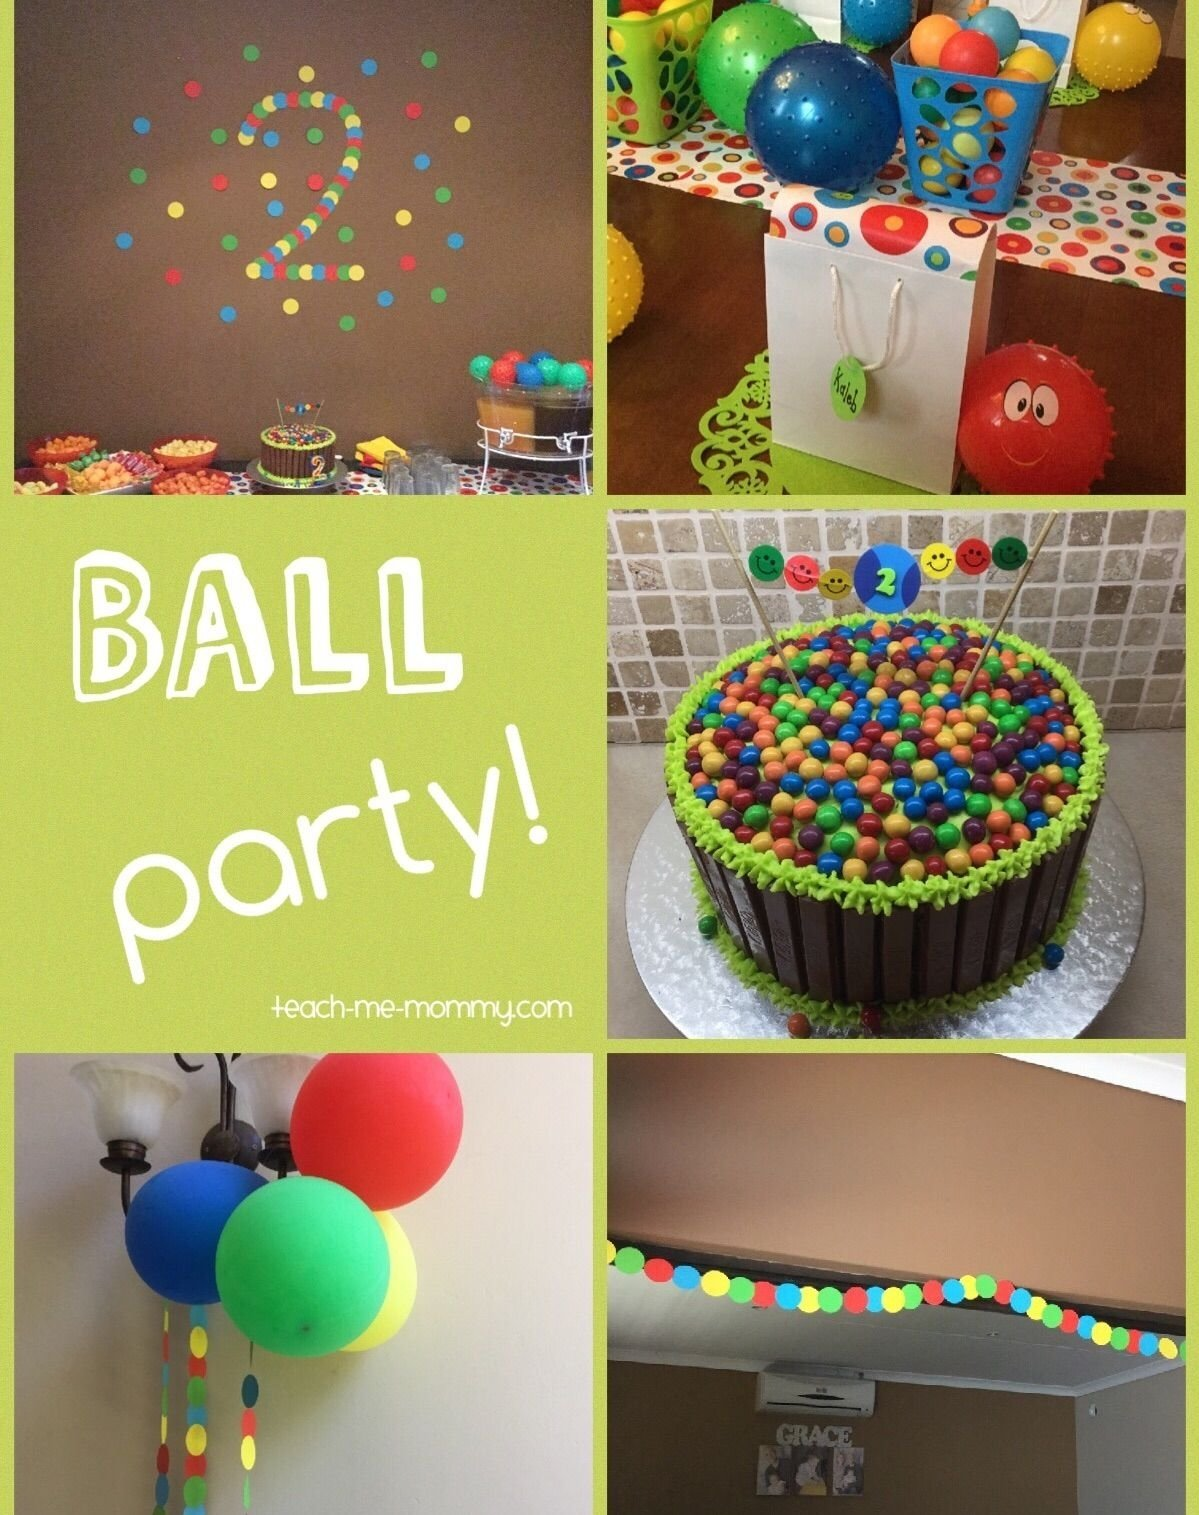 10 Lovable 4 Year Old Boy Birthday Party Ideas Ball Themed For A 2